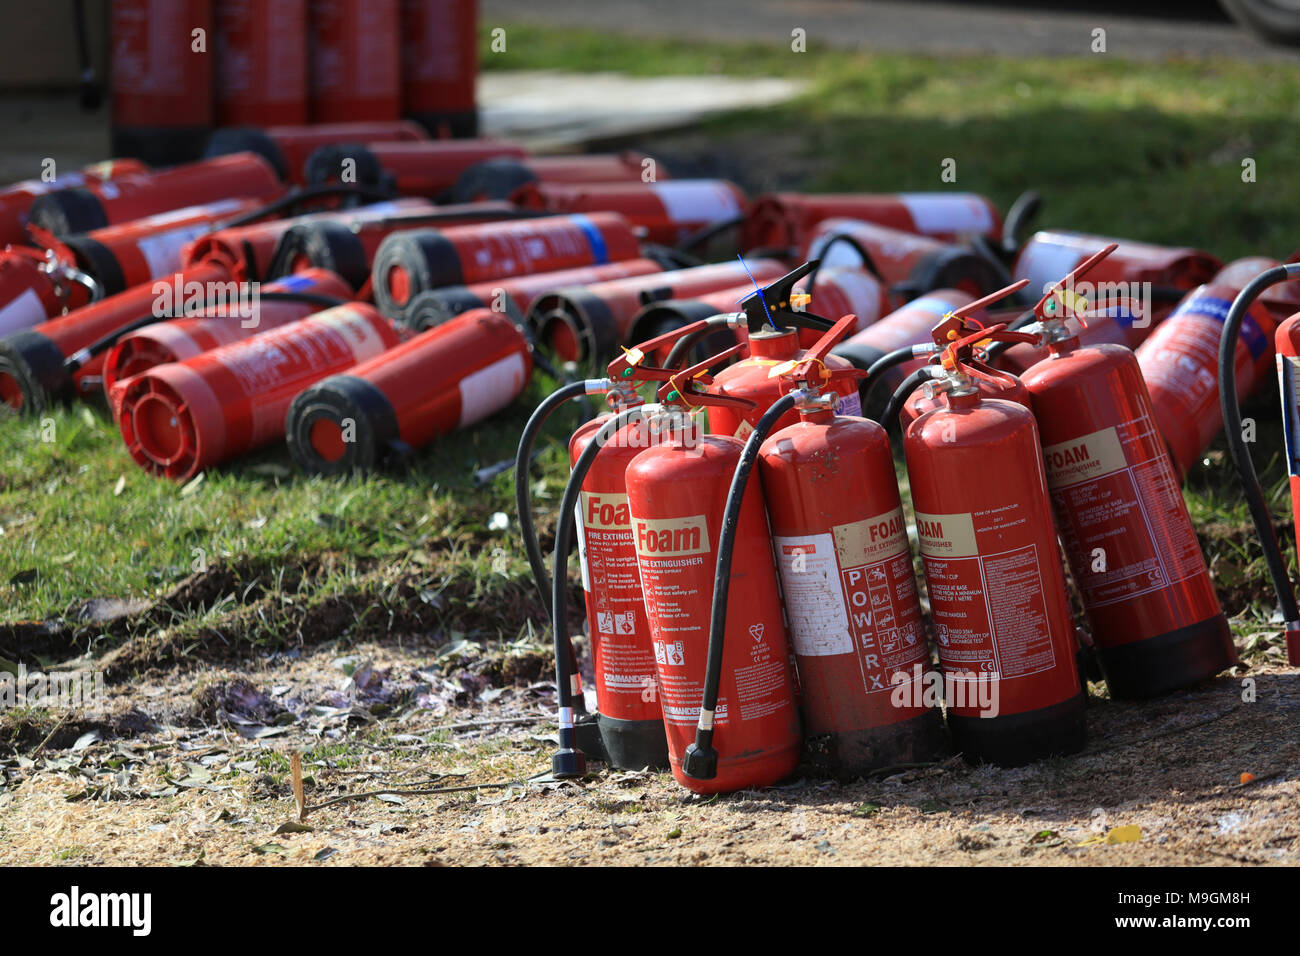 Fire extinguishers being used by motor sport marshals for fire fighting training. - Stock Image